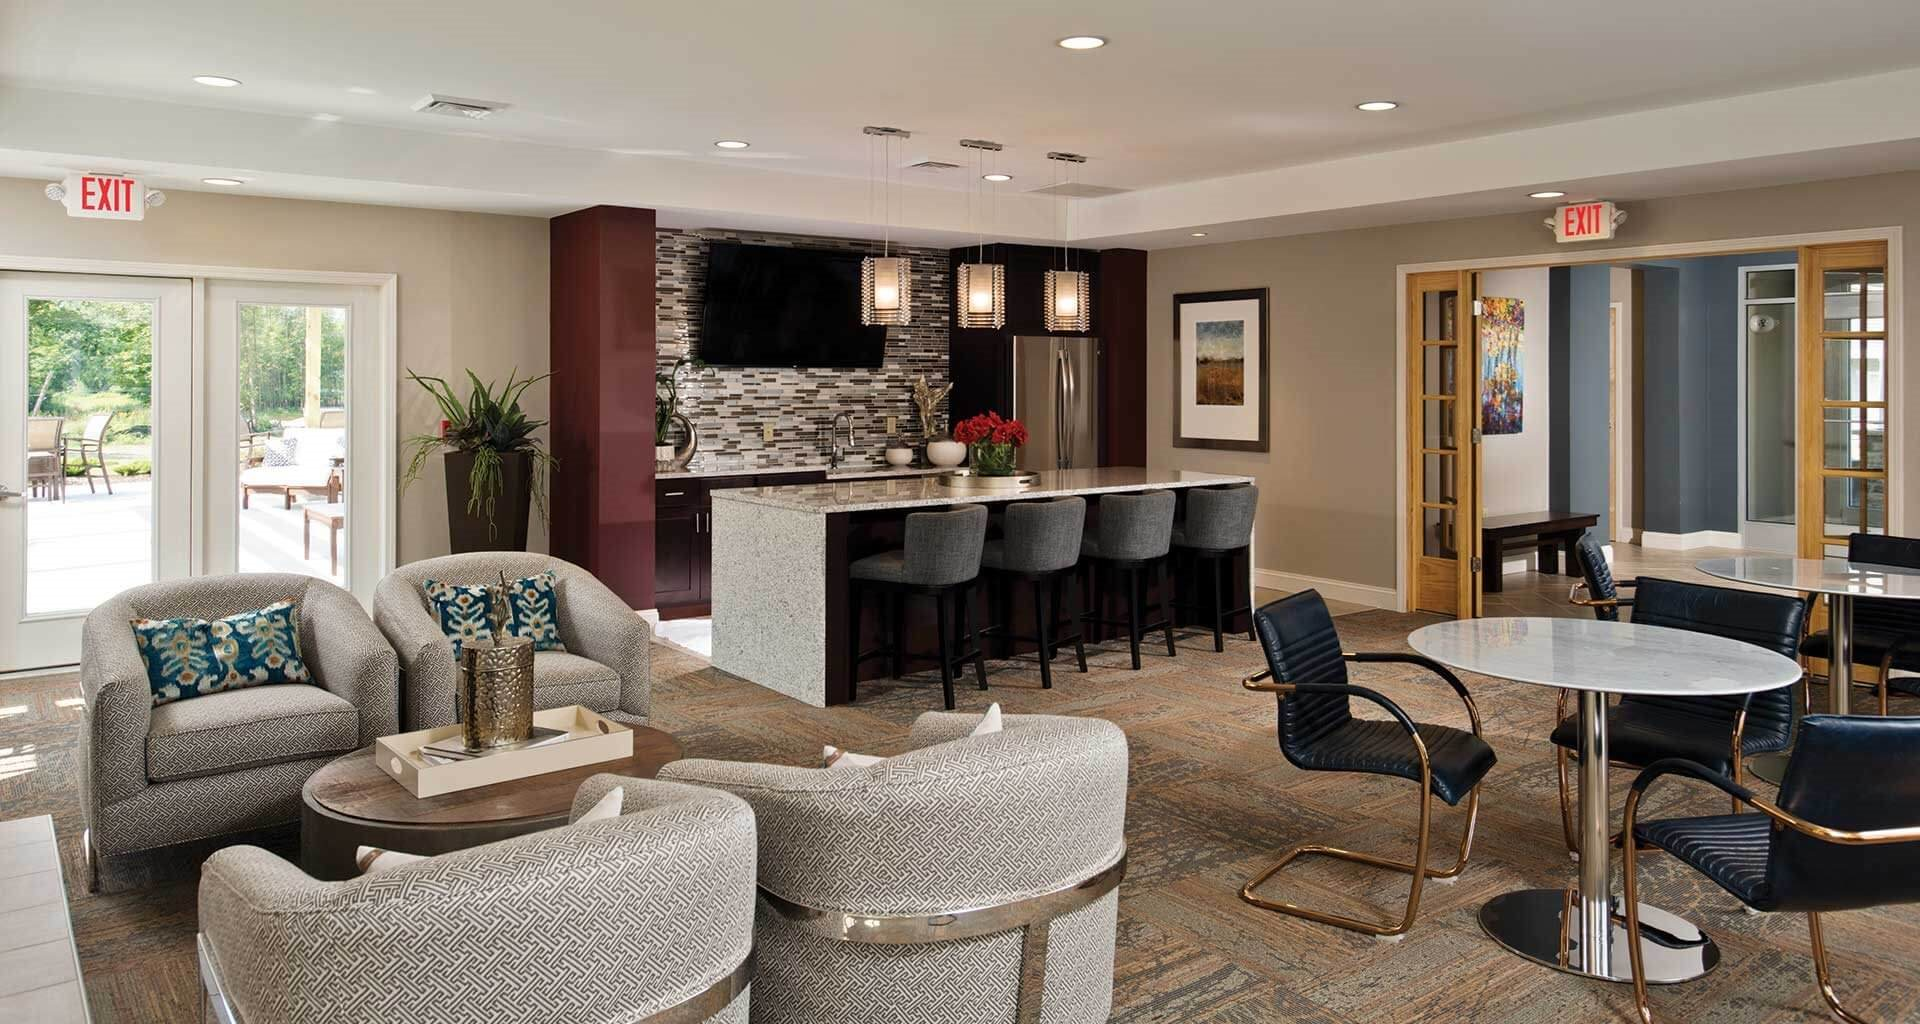 Club Room With Kitchen at Deerfield Place Luxury Apartments, Utica, NY, 13502